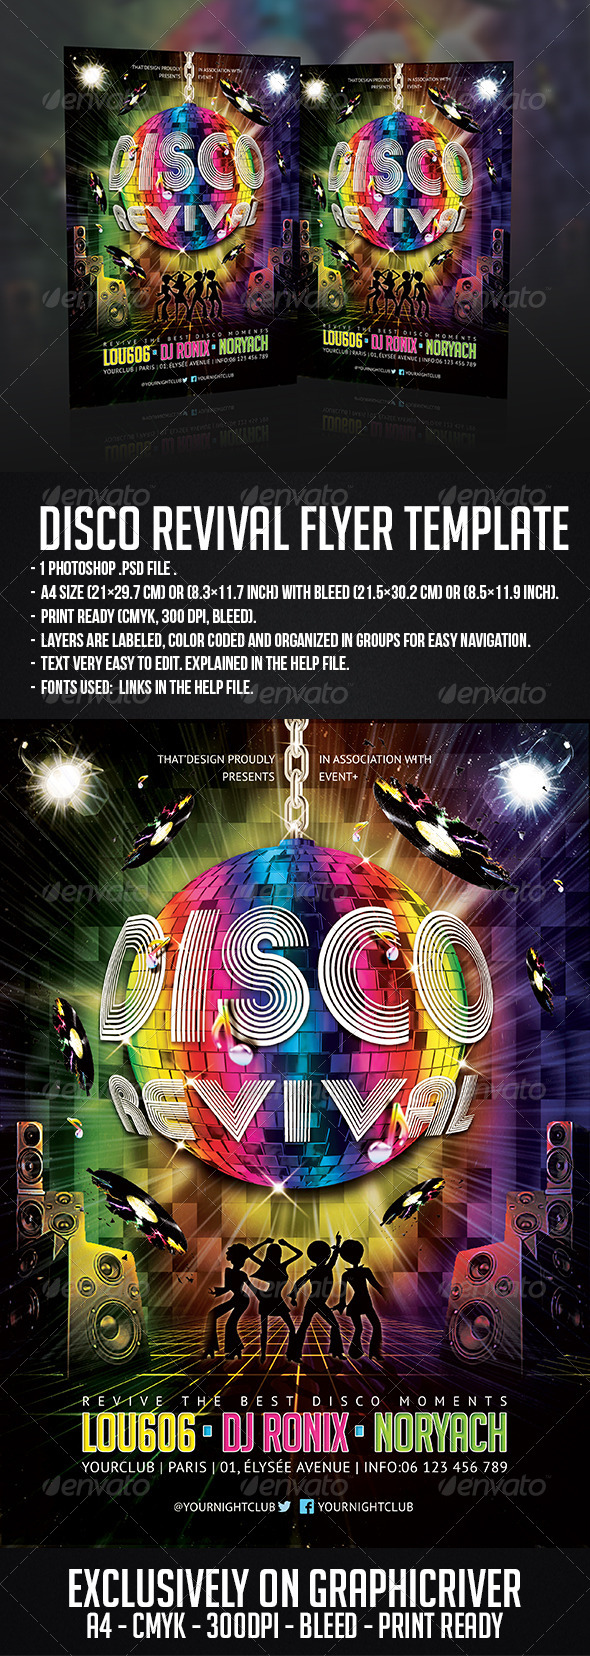 GraphicRiver Disco Revival Flyer Template 6227199